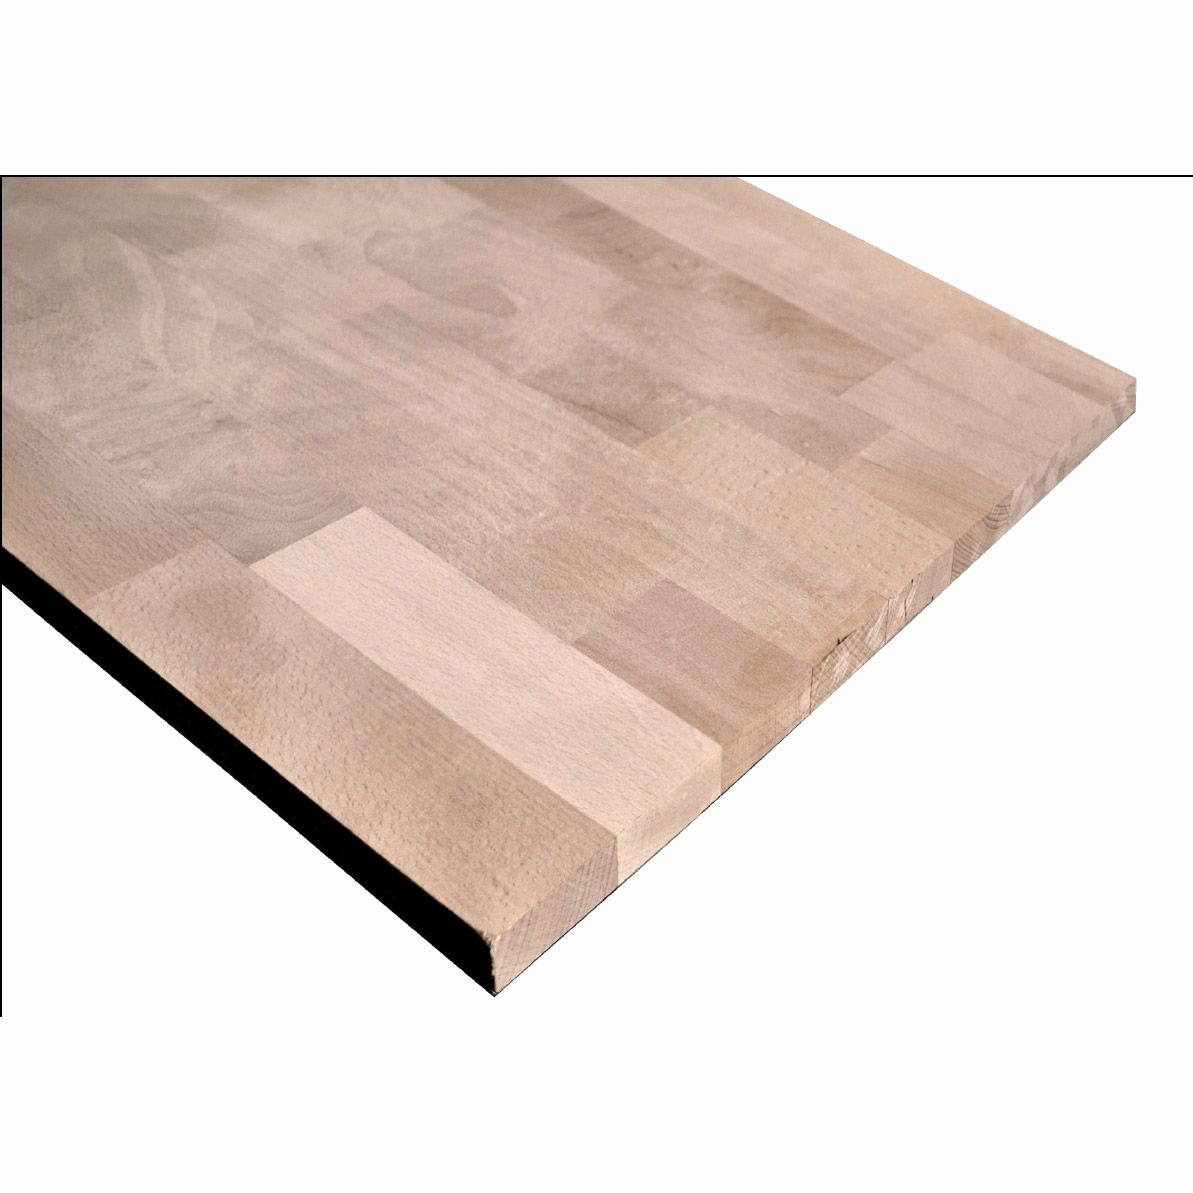 Leroy Merlin Planches